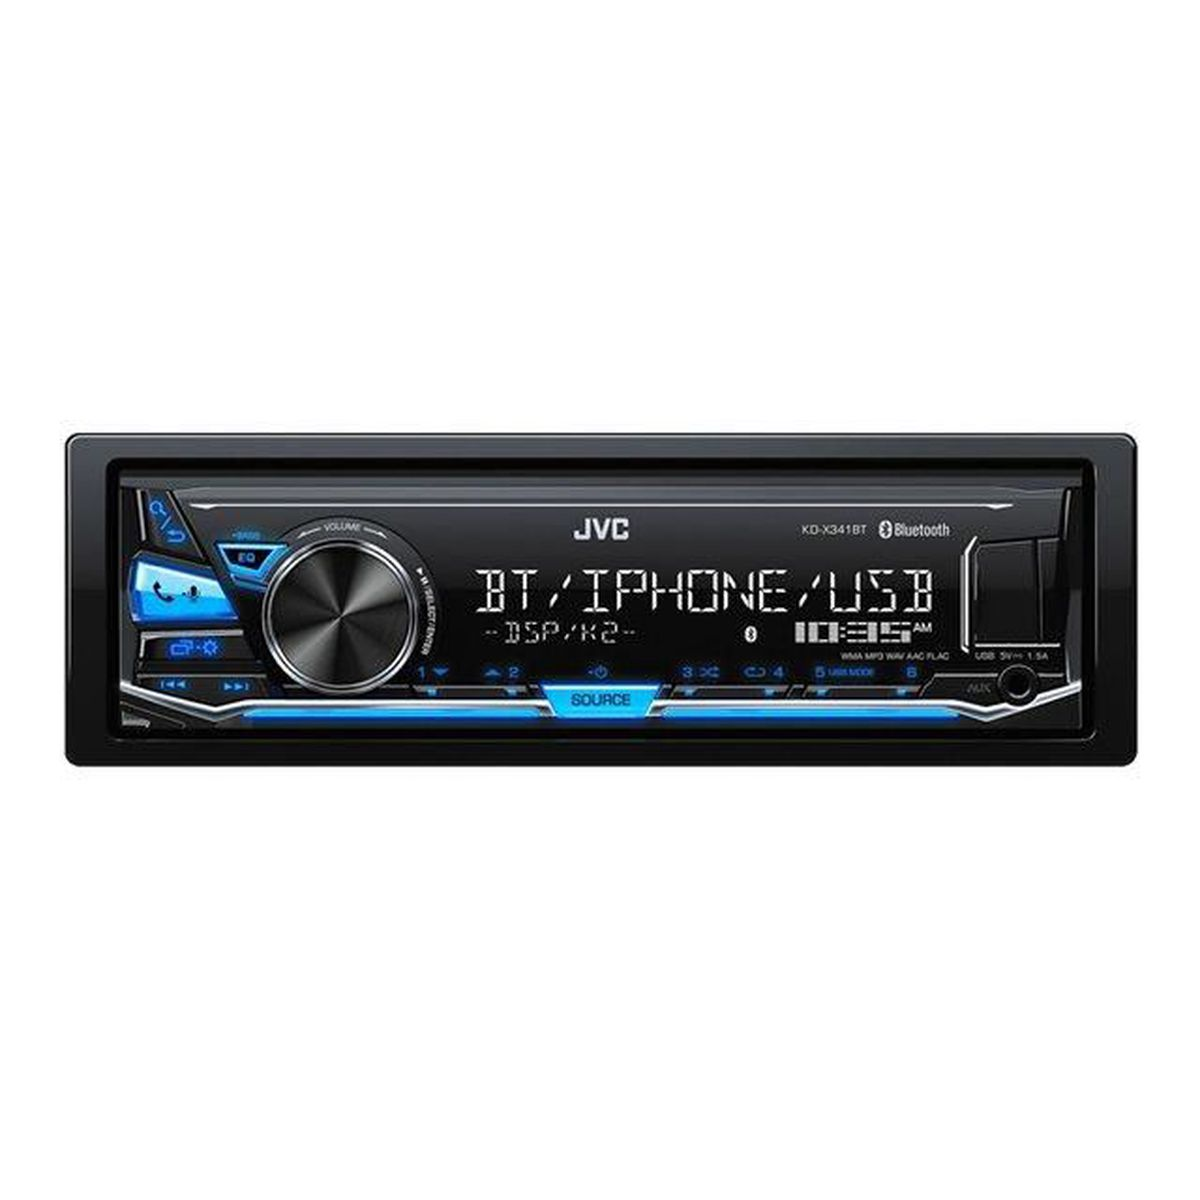 Pioneer Deh 150mp Car Stereo With Mp3 Playback together with Car Stereo Lifier Wiring Diagram additionally Kenwood Cd Changer Wiring Diagram as well Boat Speaker Wiring Diagram also Double din installed 2013 express 34735. on kenwood wiring harness